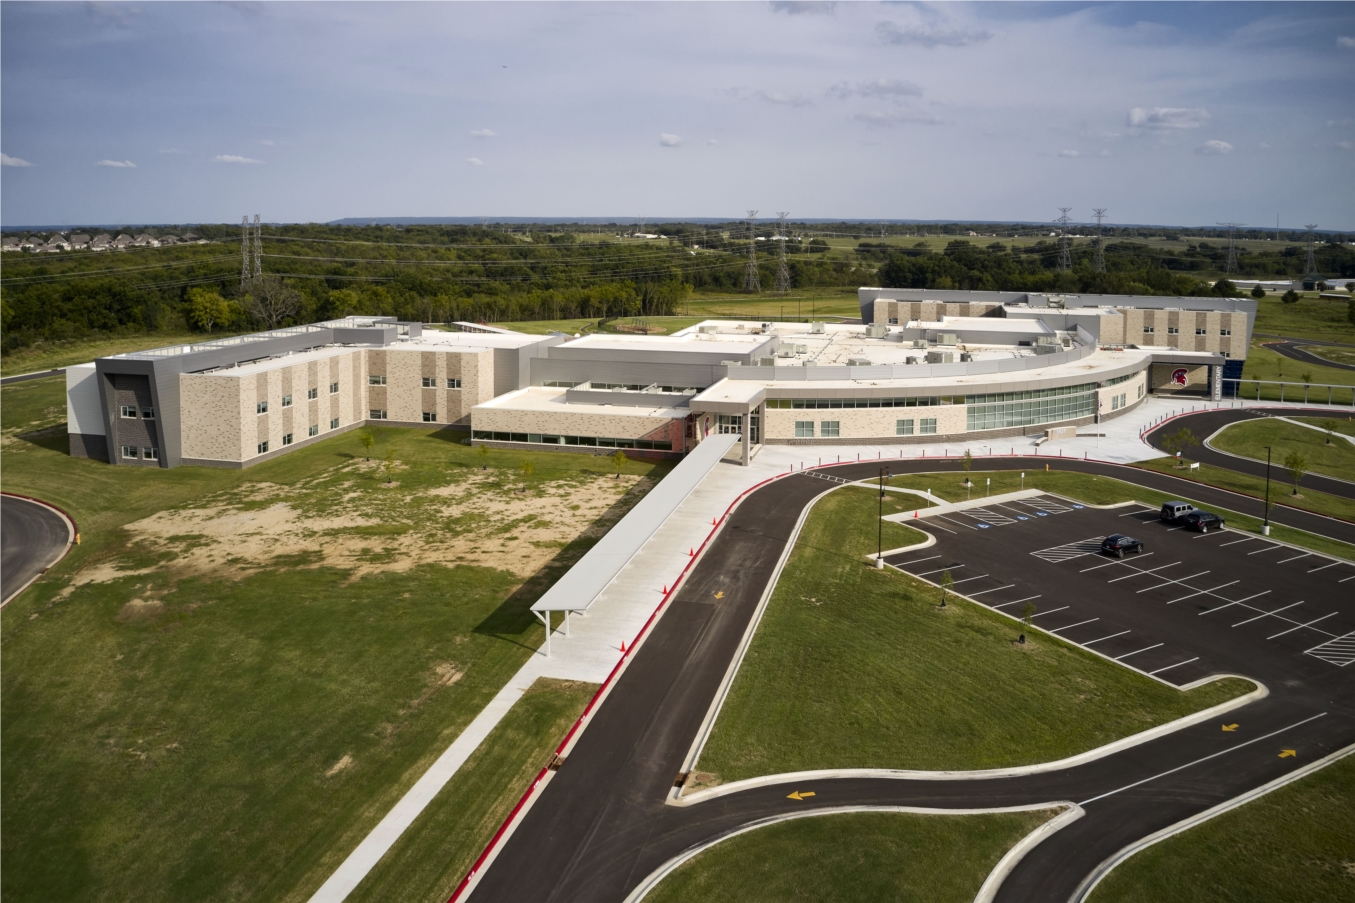 Bixby Public Schools, New West Intermediate and Elementary, Bixby, OK. Completed Summer 2020